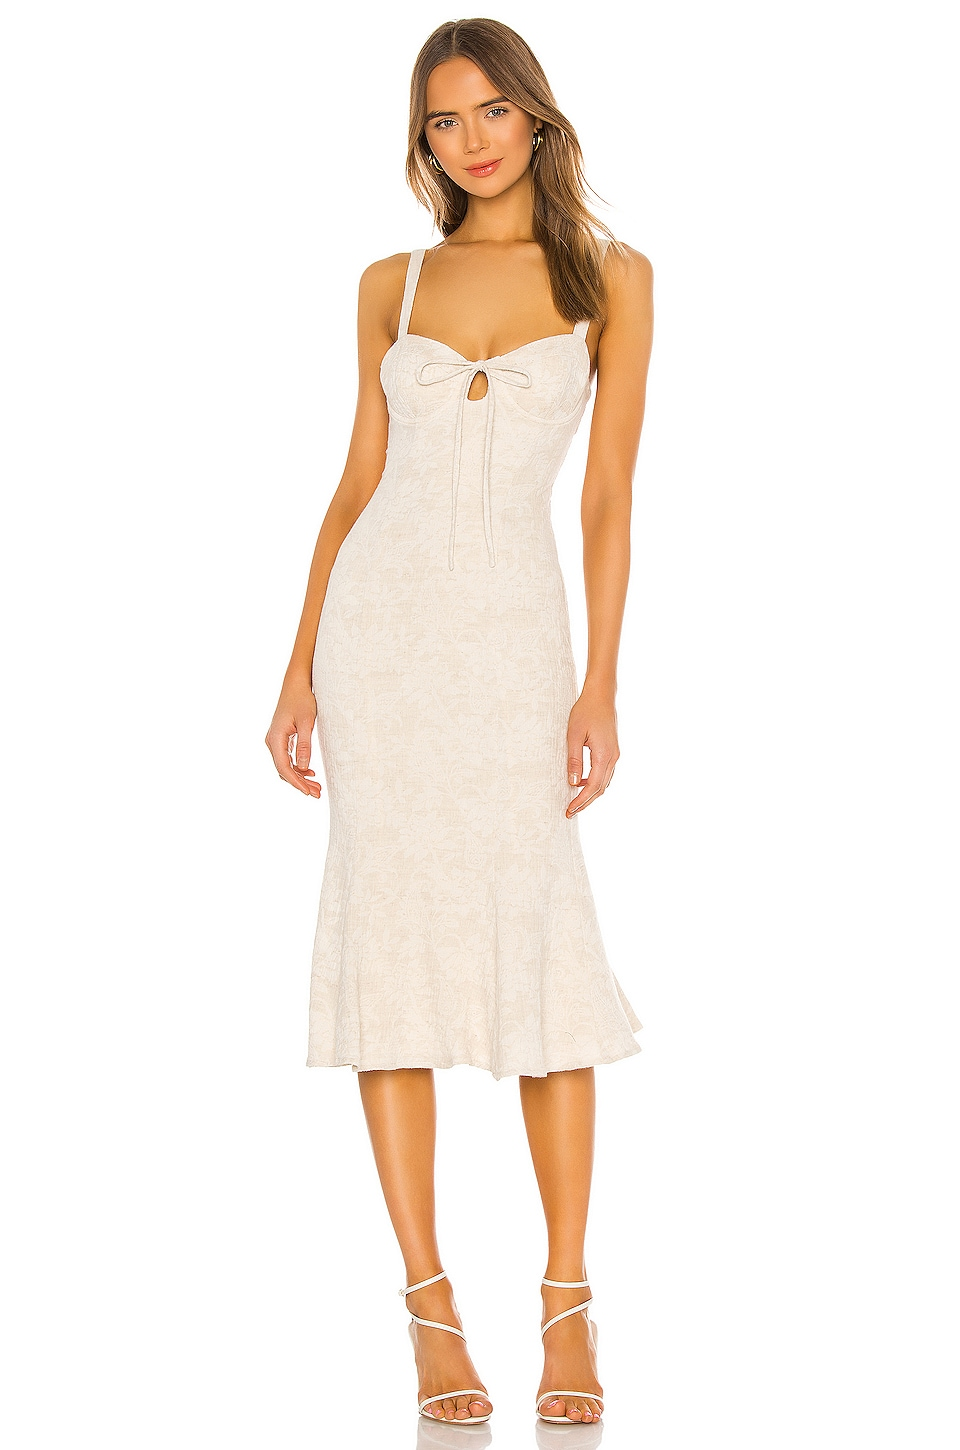 MAJORELLE Fabiana Midi Dress in Oatmilk